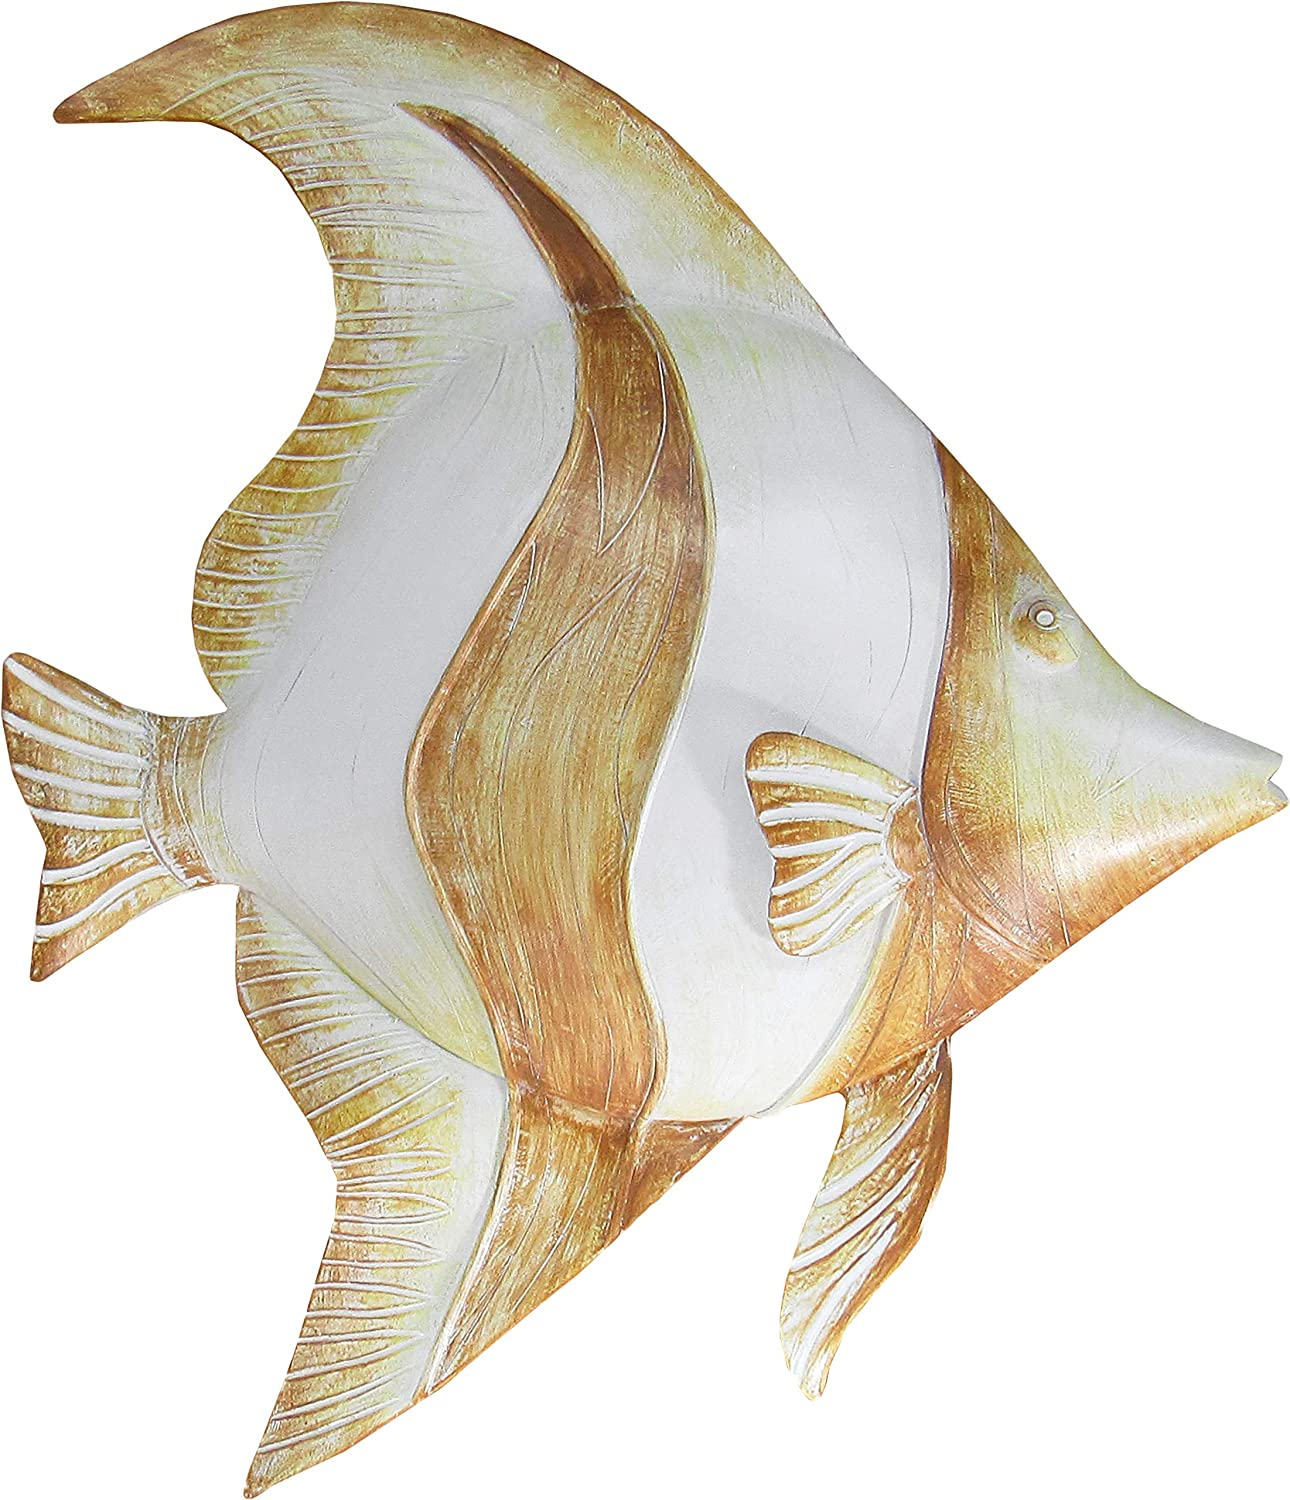 World of Wonders - Ocean Harmony Series - Marina - Elegant Angelfish Wall Sculpture Hand-Painted Easy Mount Beach House Shabby Chic Sea Life Marine Nautical Home Decor Accent, 12-inch